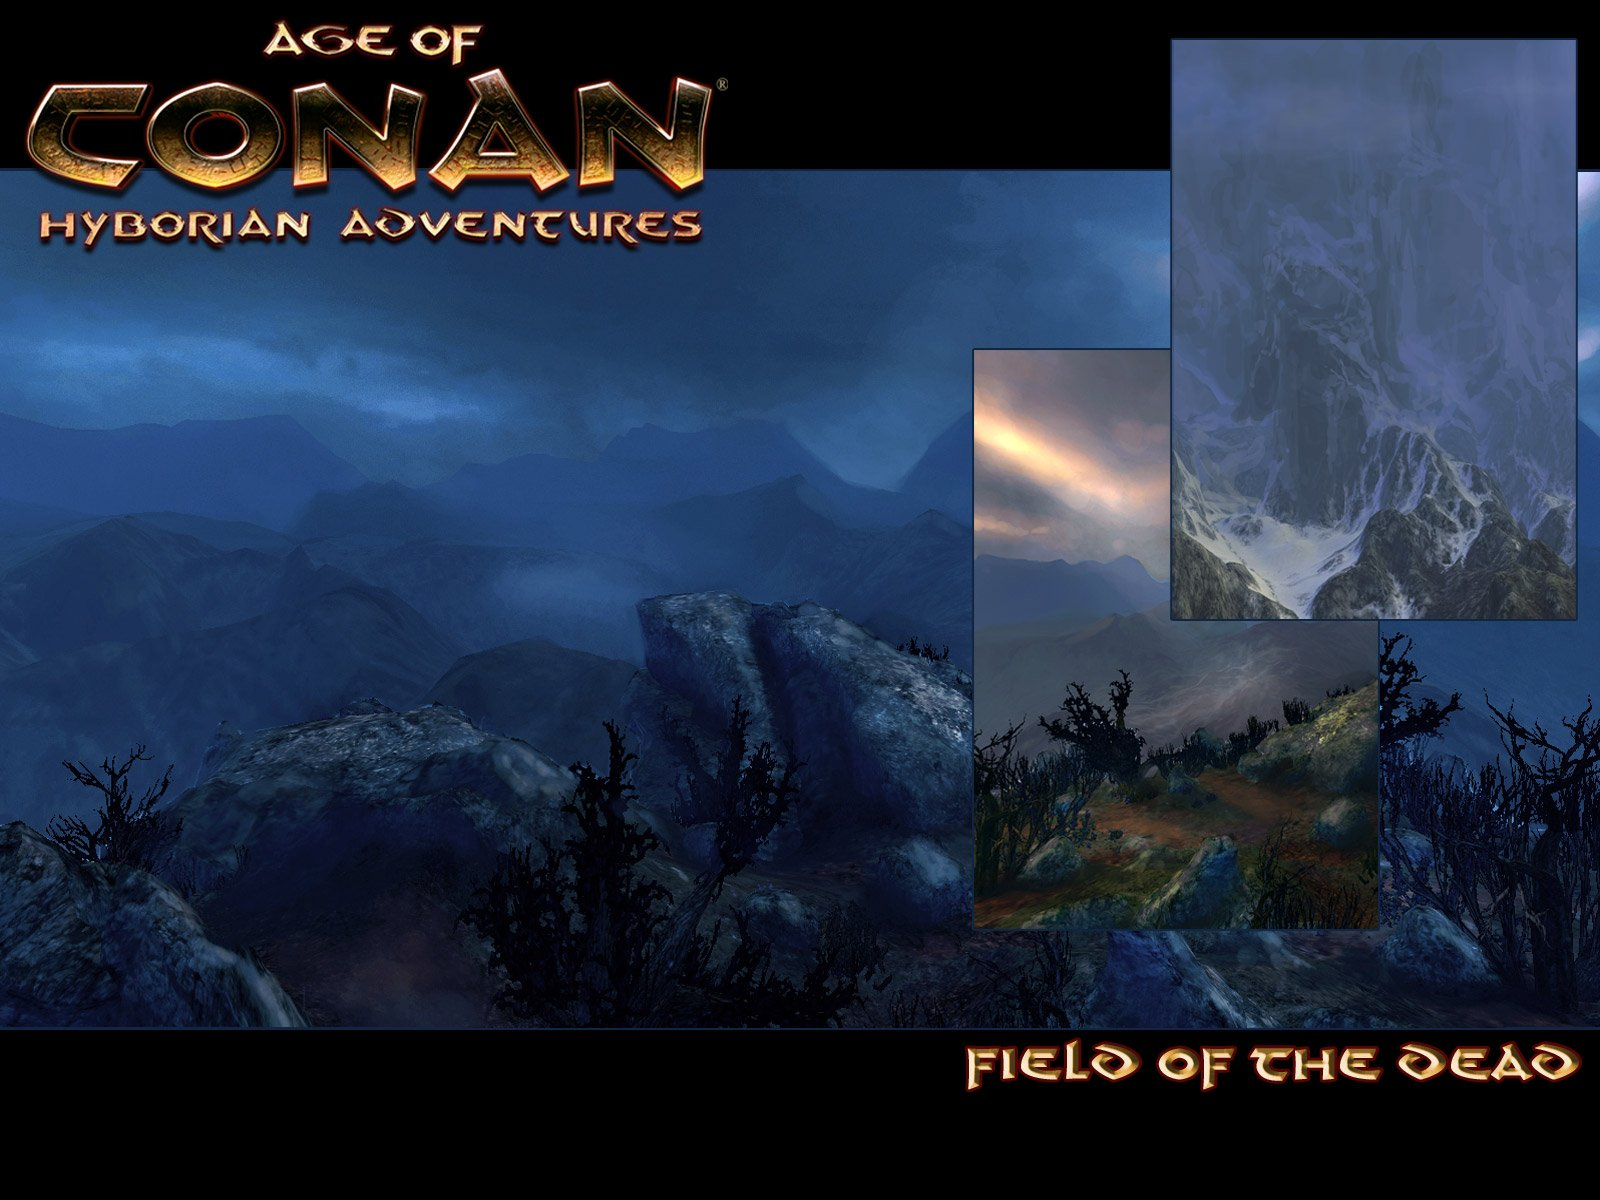 Age of Conan wallpaper 7